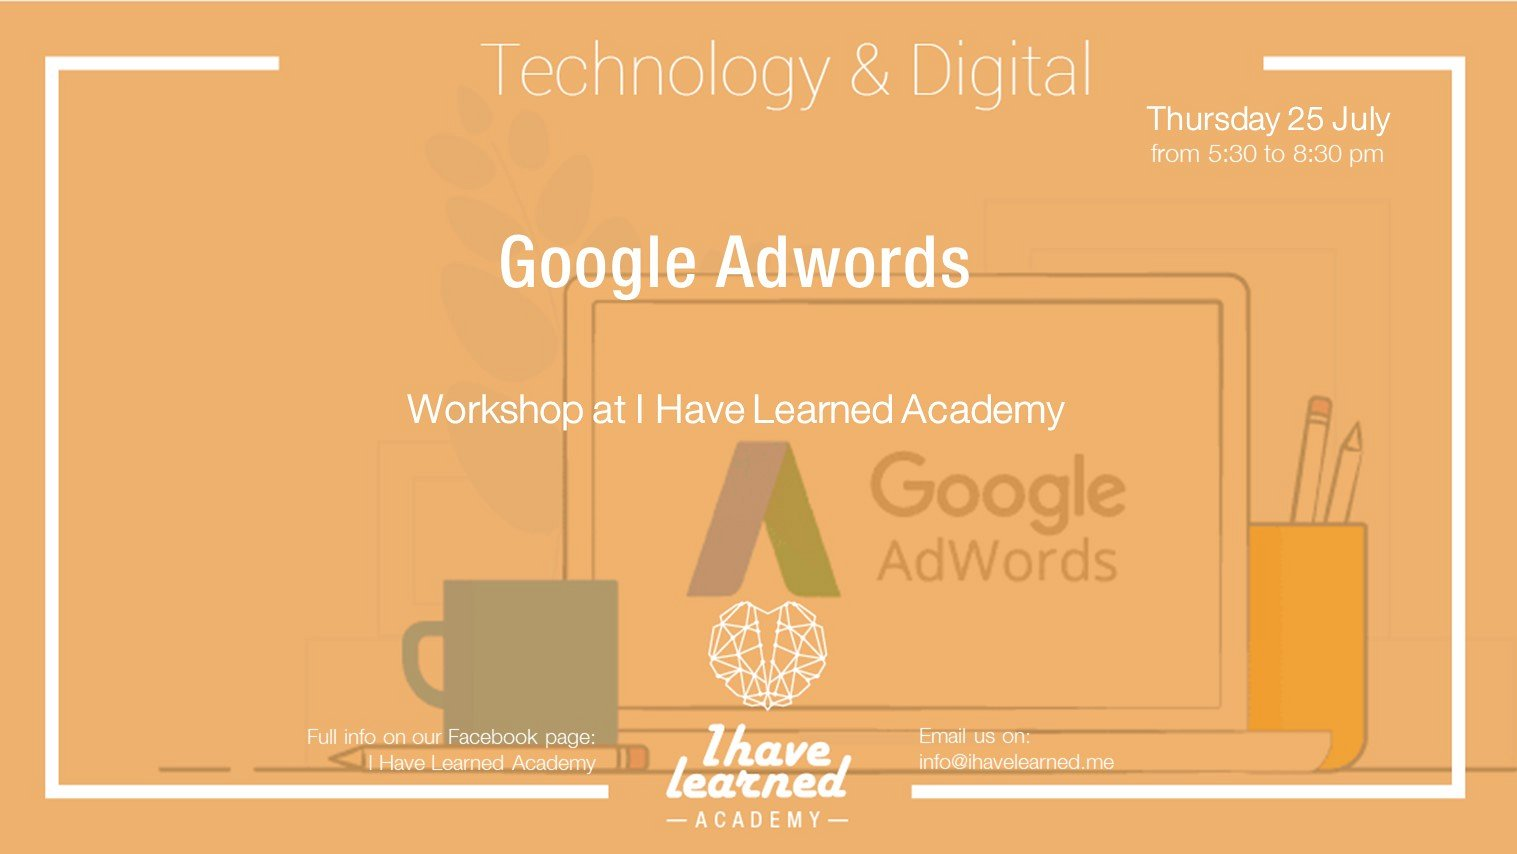 Google AdWords Workshop at I Have Learned Academy « Lebtivity